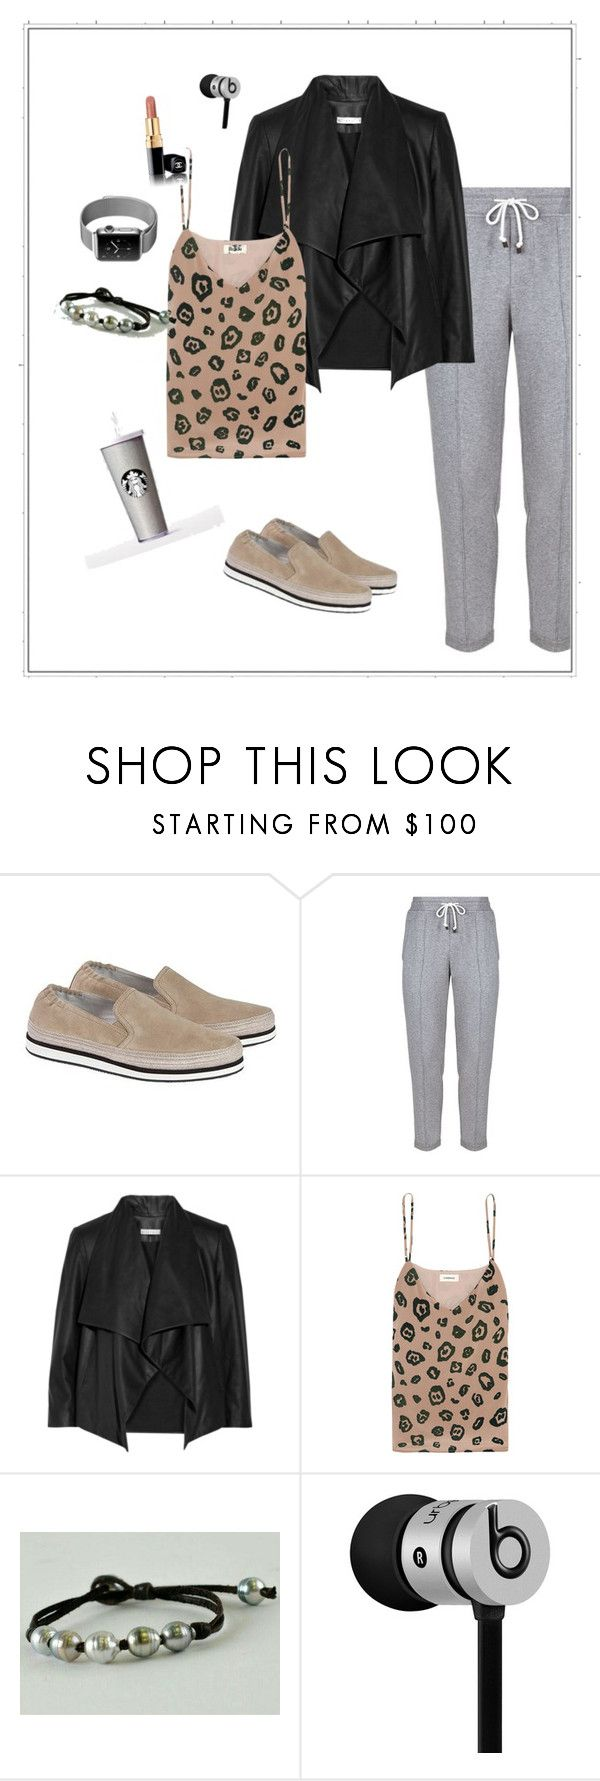 """""""Take it easy, like sunday morning"""" by olivia-stones ❤ liked on Polyvore featuring Prada Sport, Brunello Cucinelli, Alice + Olivia, L'Agence, Beats by Dr. Dre, finepearls and authentico"""